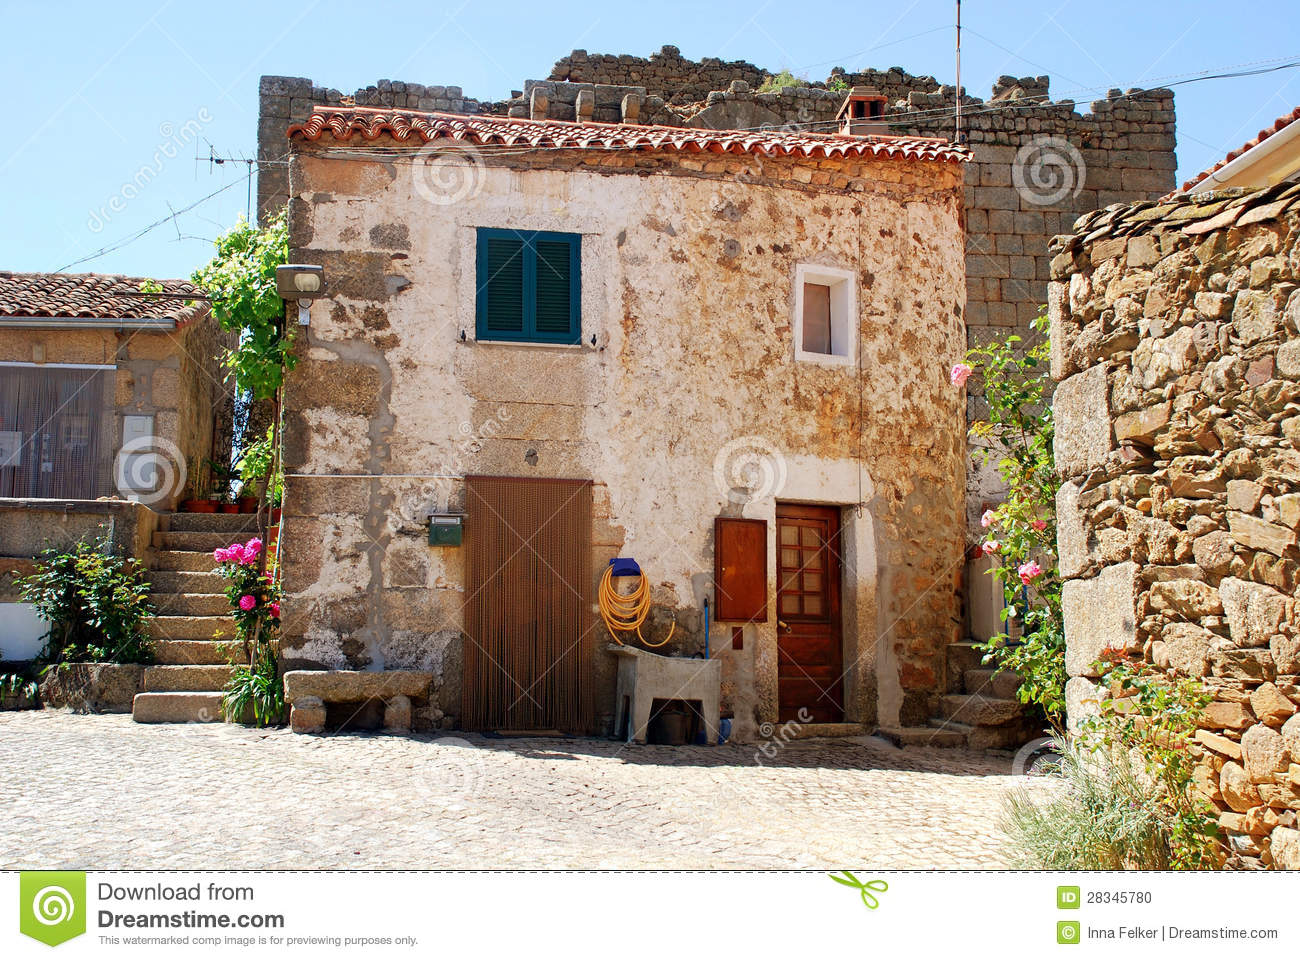 Vieille maison rurale en pierre portugal photo stock for Vieille maison en pierre